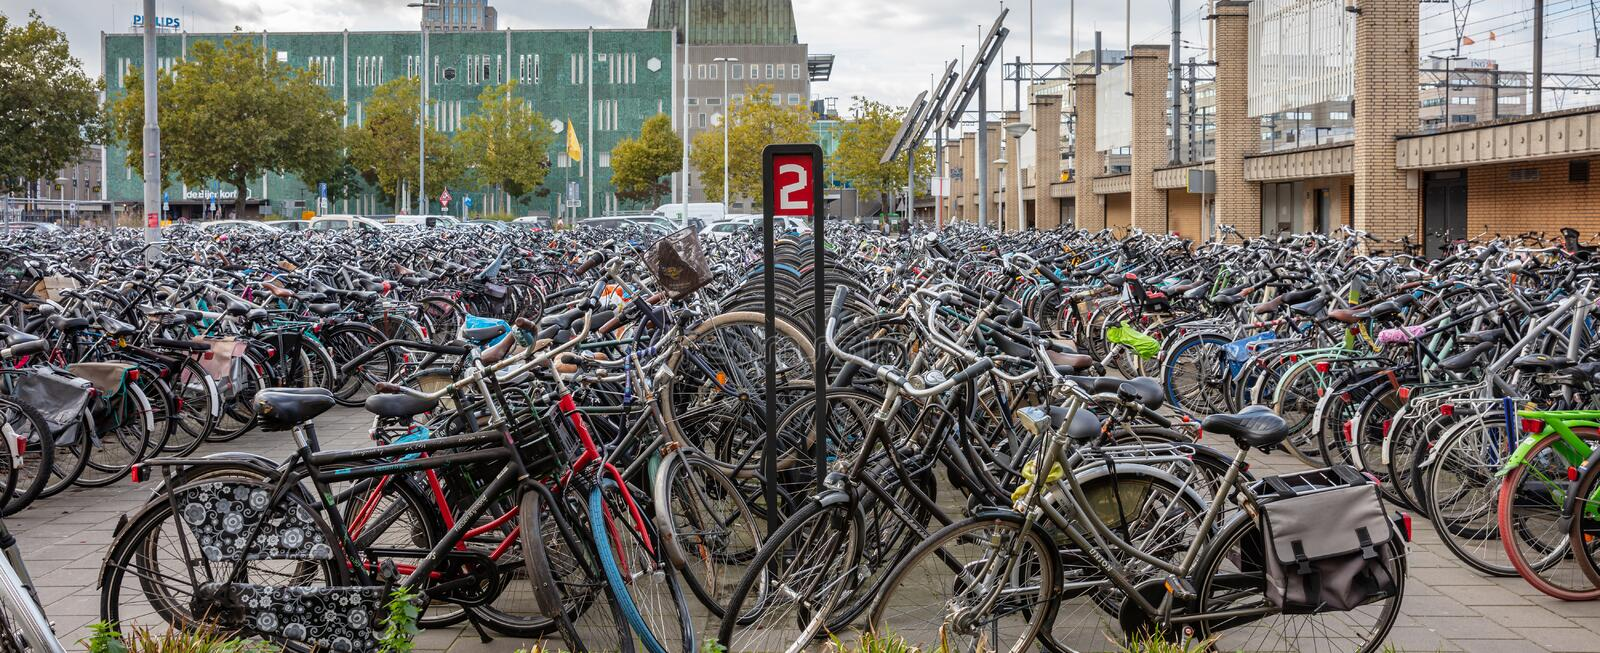 Public parking lot for bicycles background in Eindhoven, Netherlands stock image